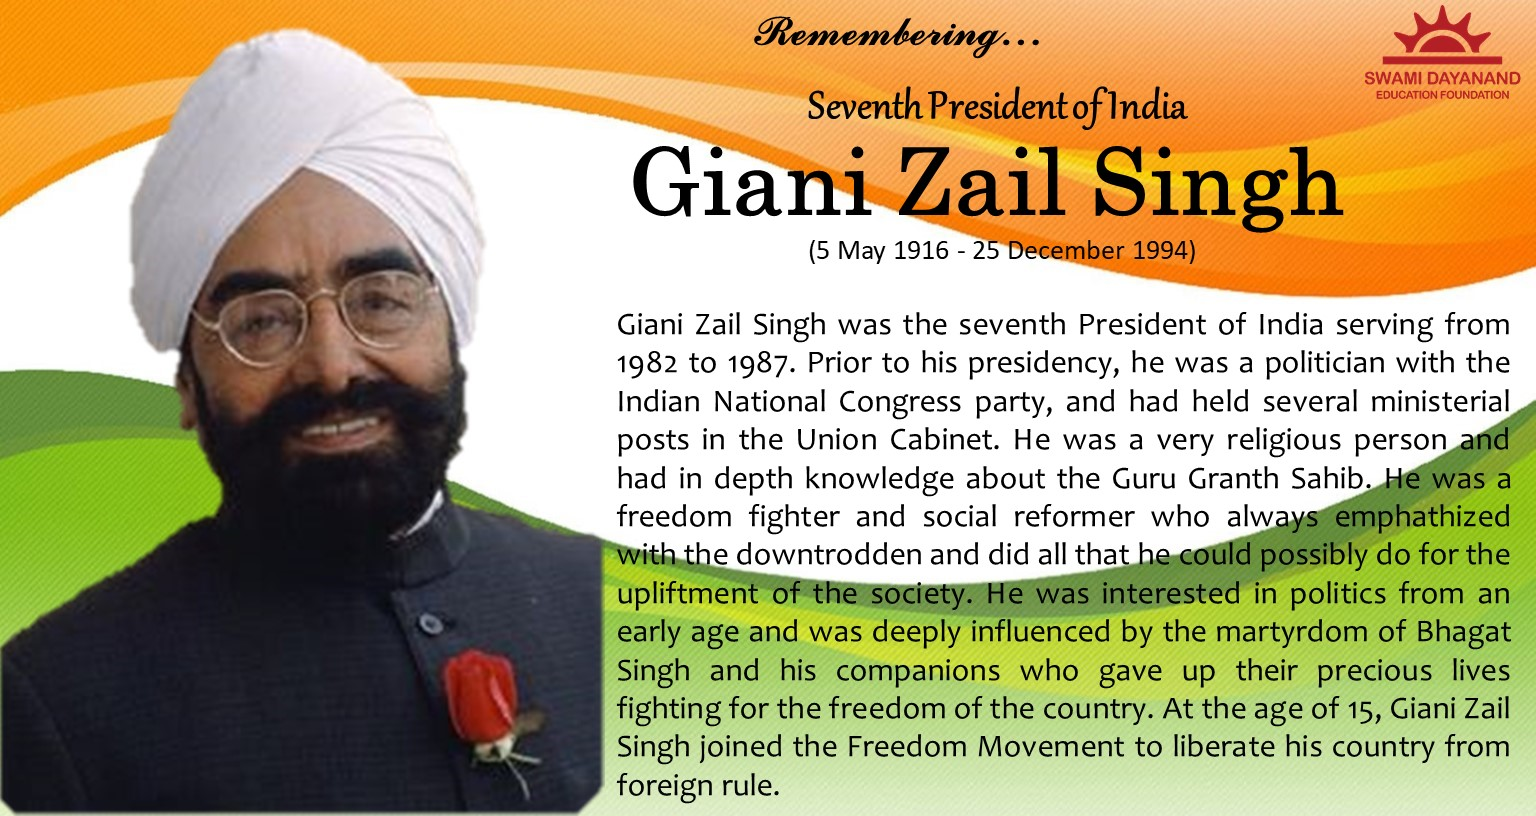 GIANI ZAIL SINGH  (5th May 1916 - 25th Dec 1994)